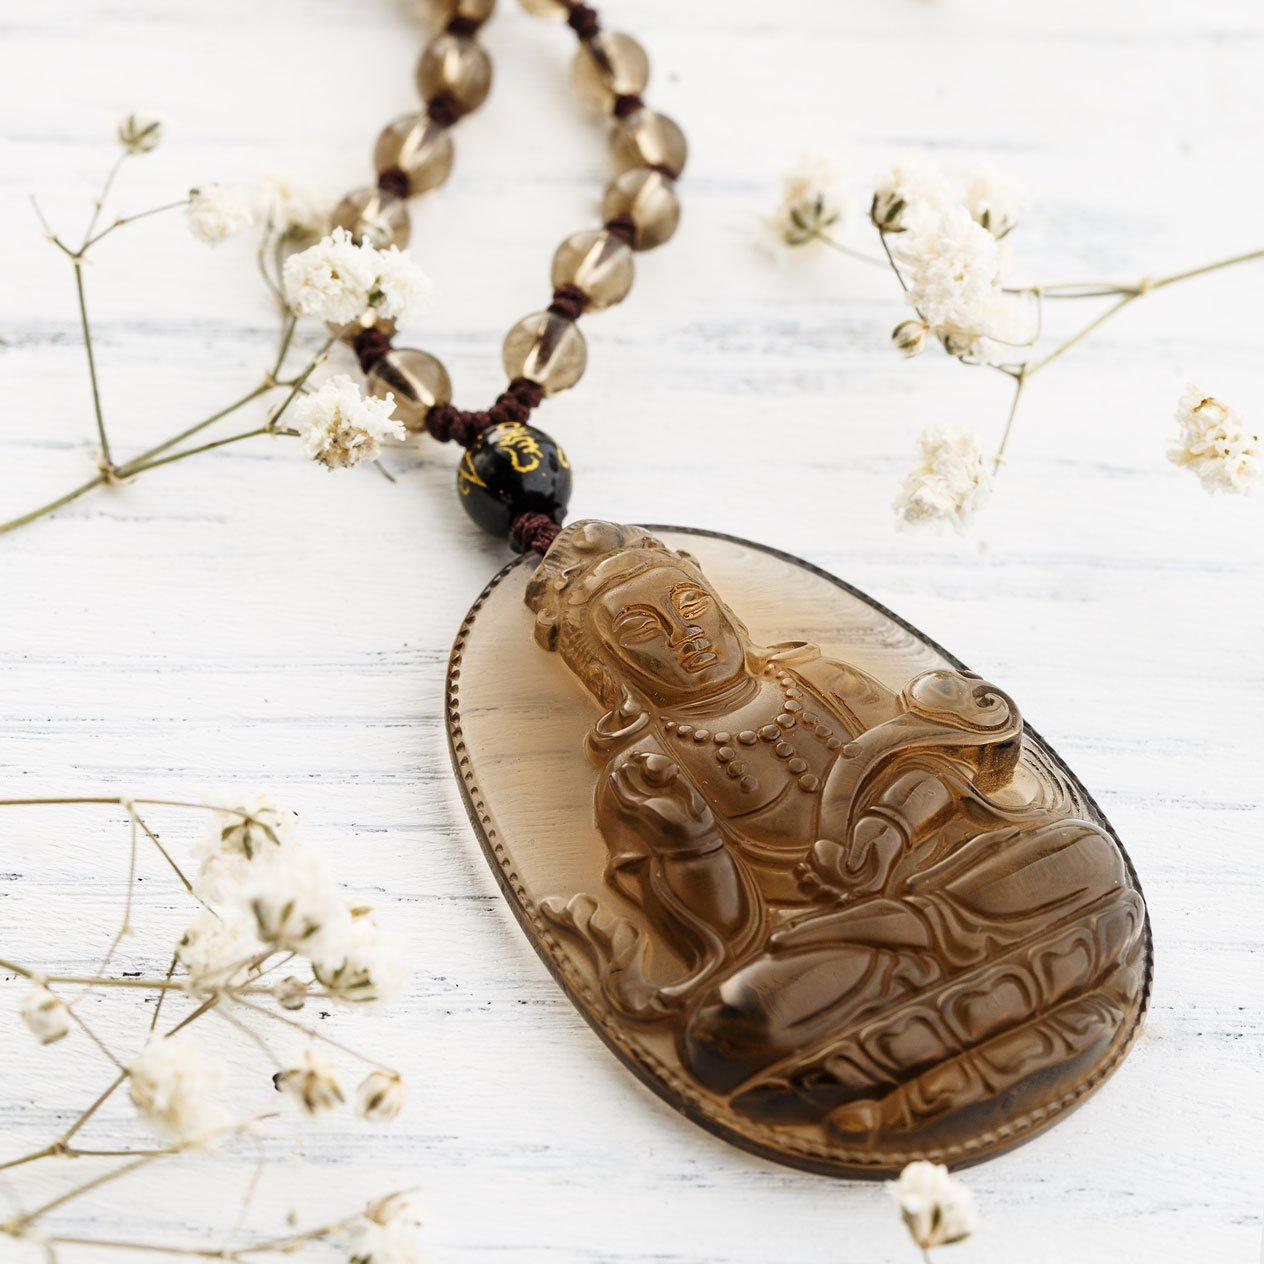 Natural Ice Obsidian Guanyin Necklace